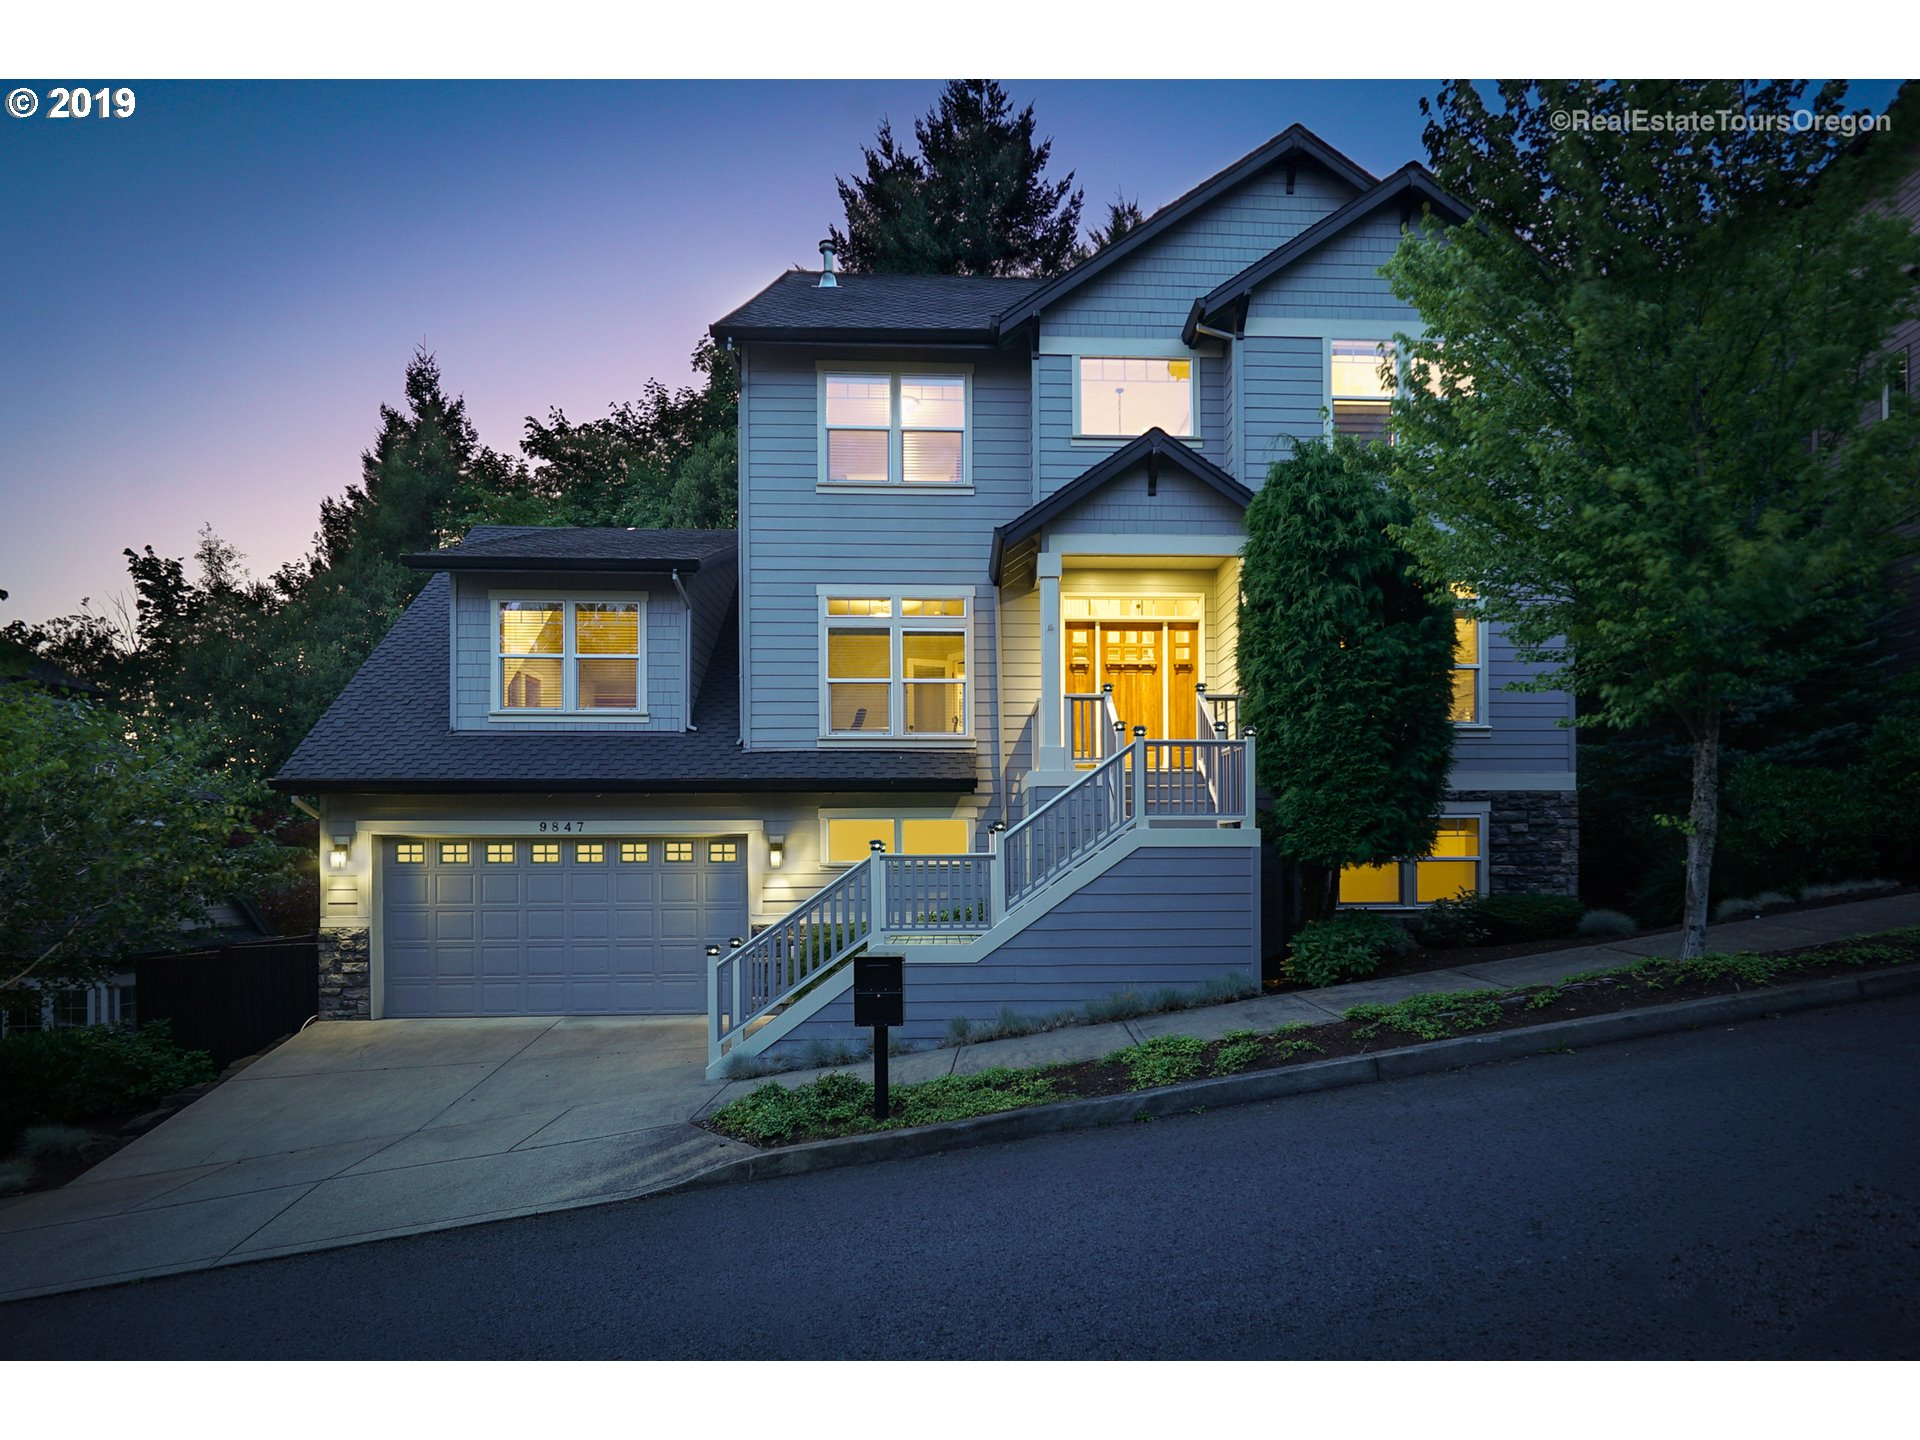 9847 NW SKYLINE HEIGHTS DR, Portland OR 97229